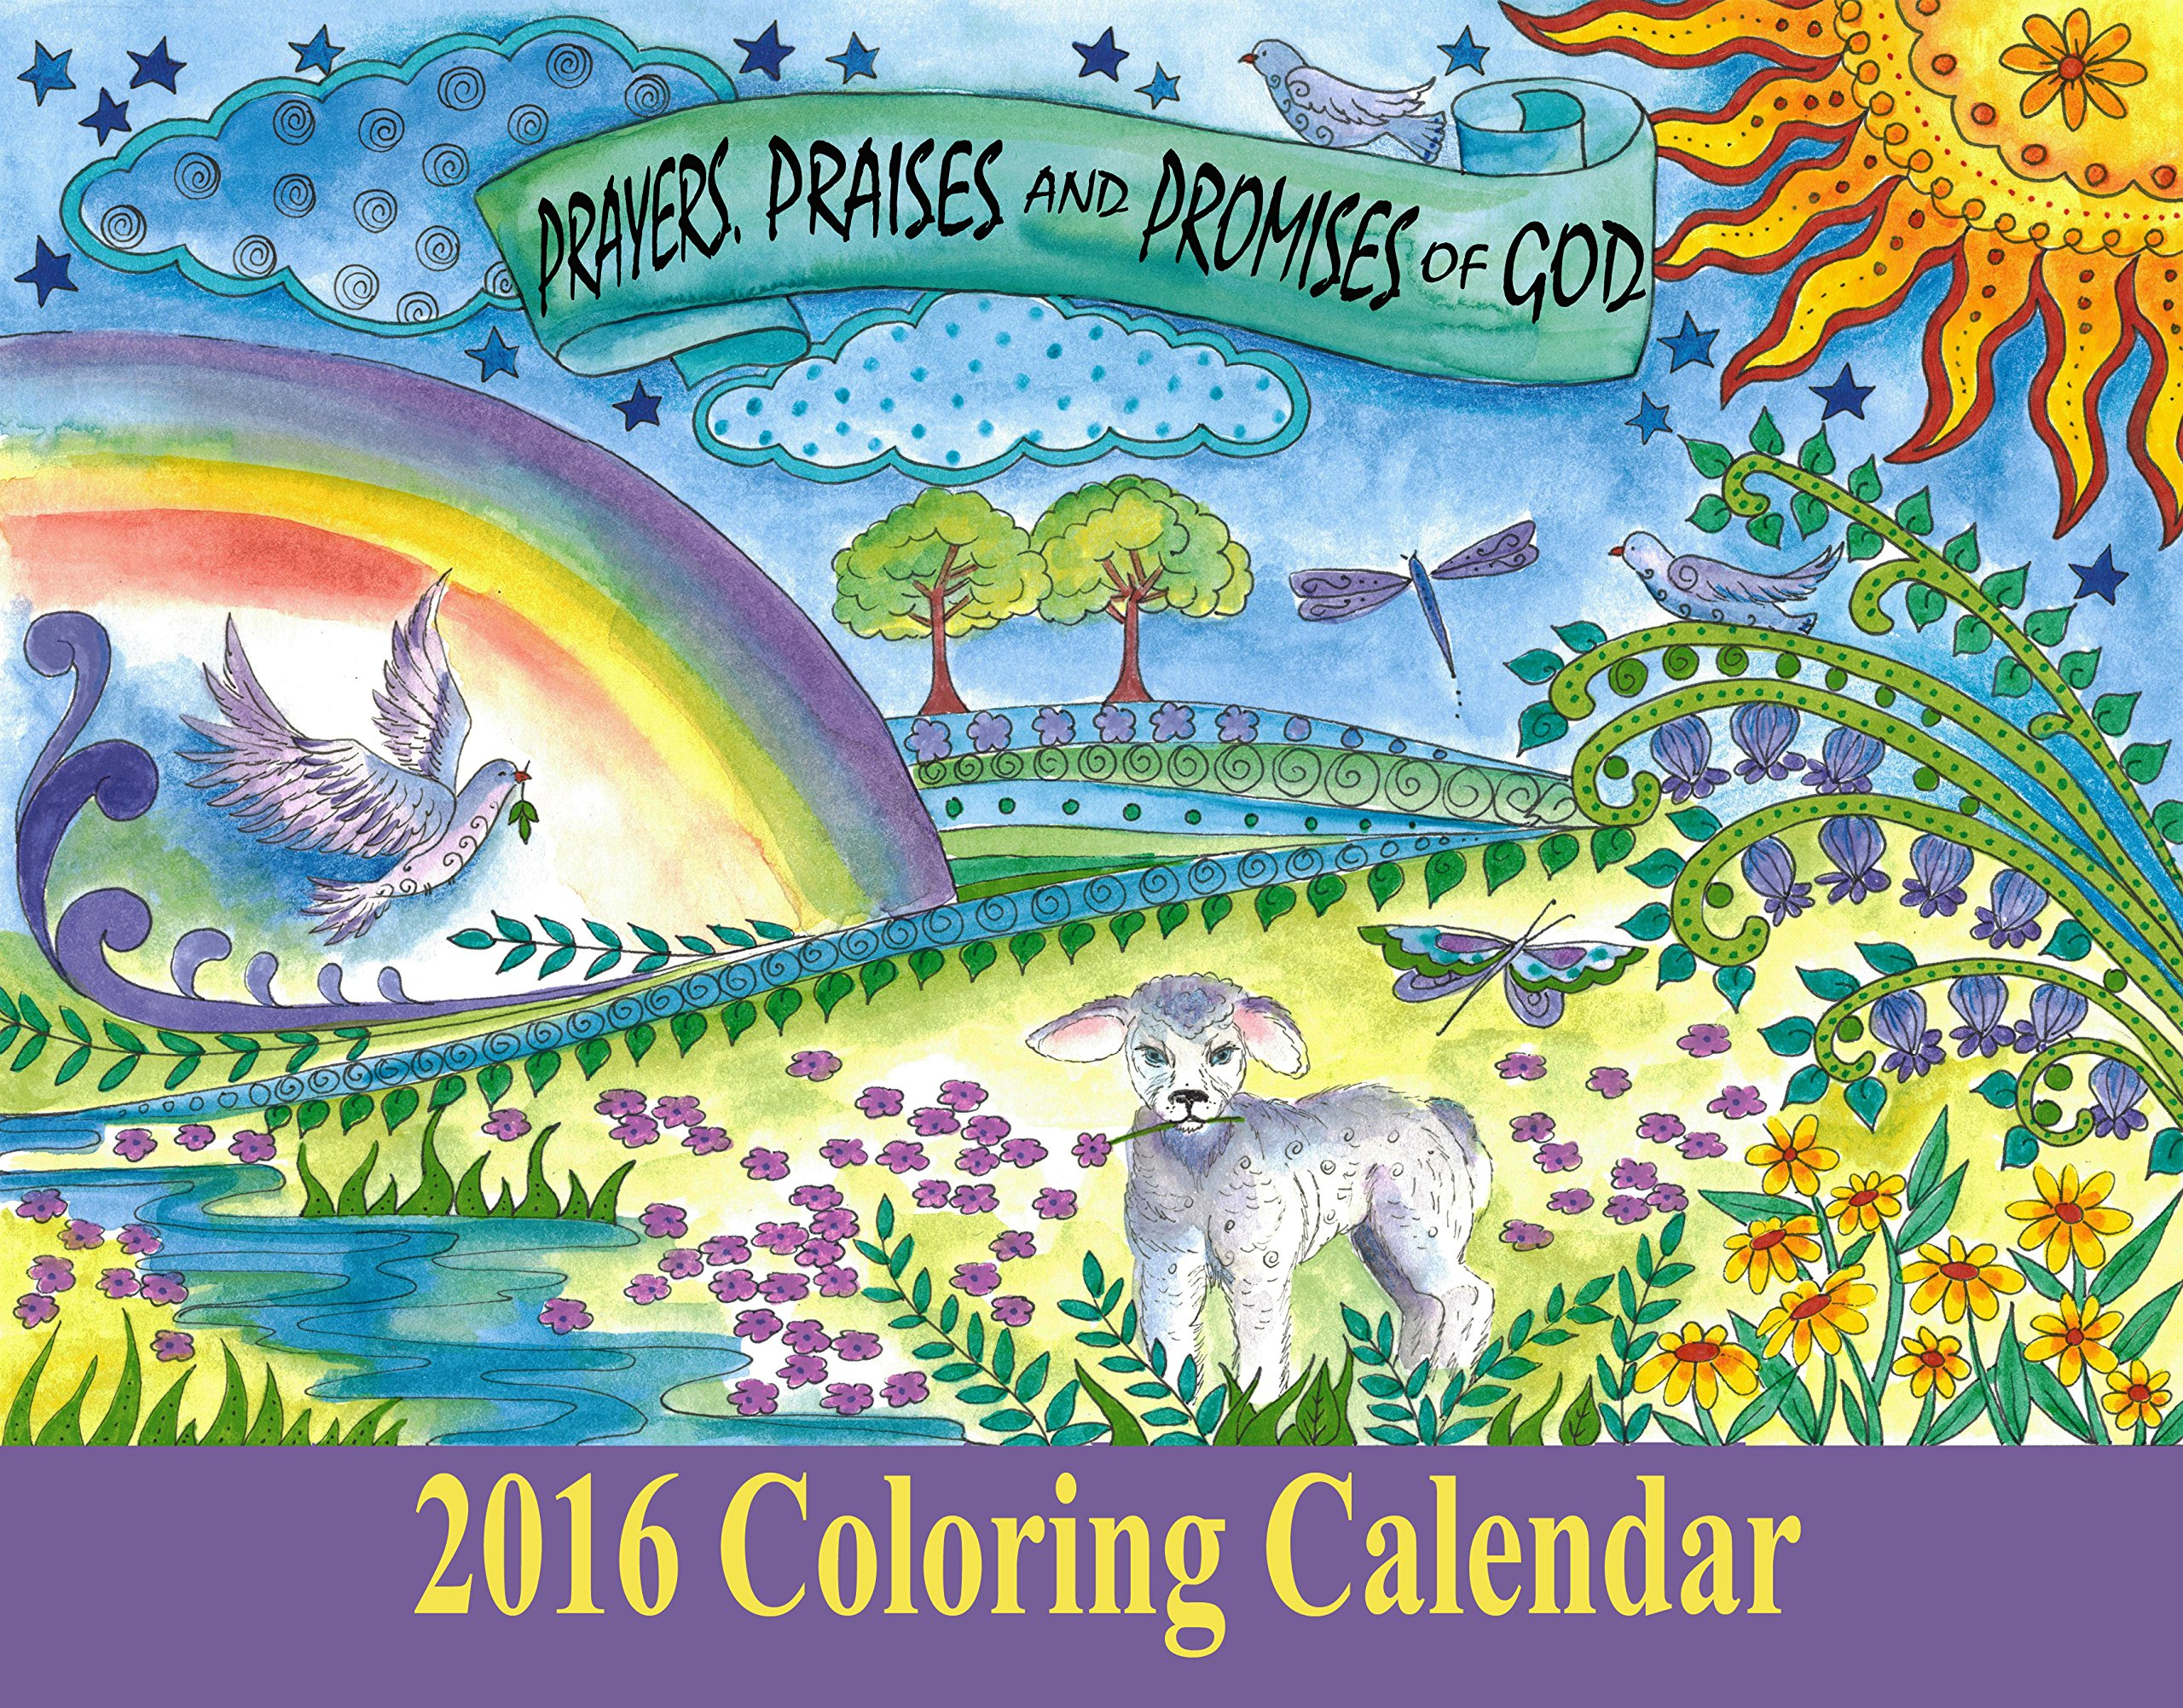 Christian Coloring Calendar 2016 Inspirational Messages for the ...